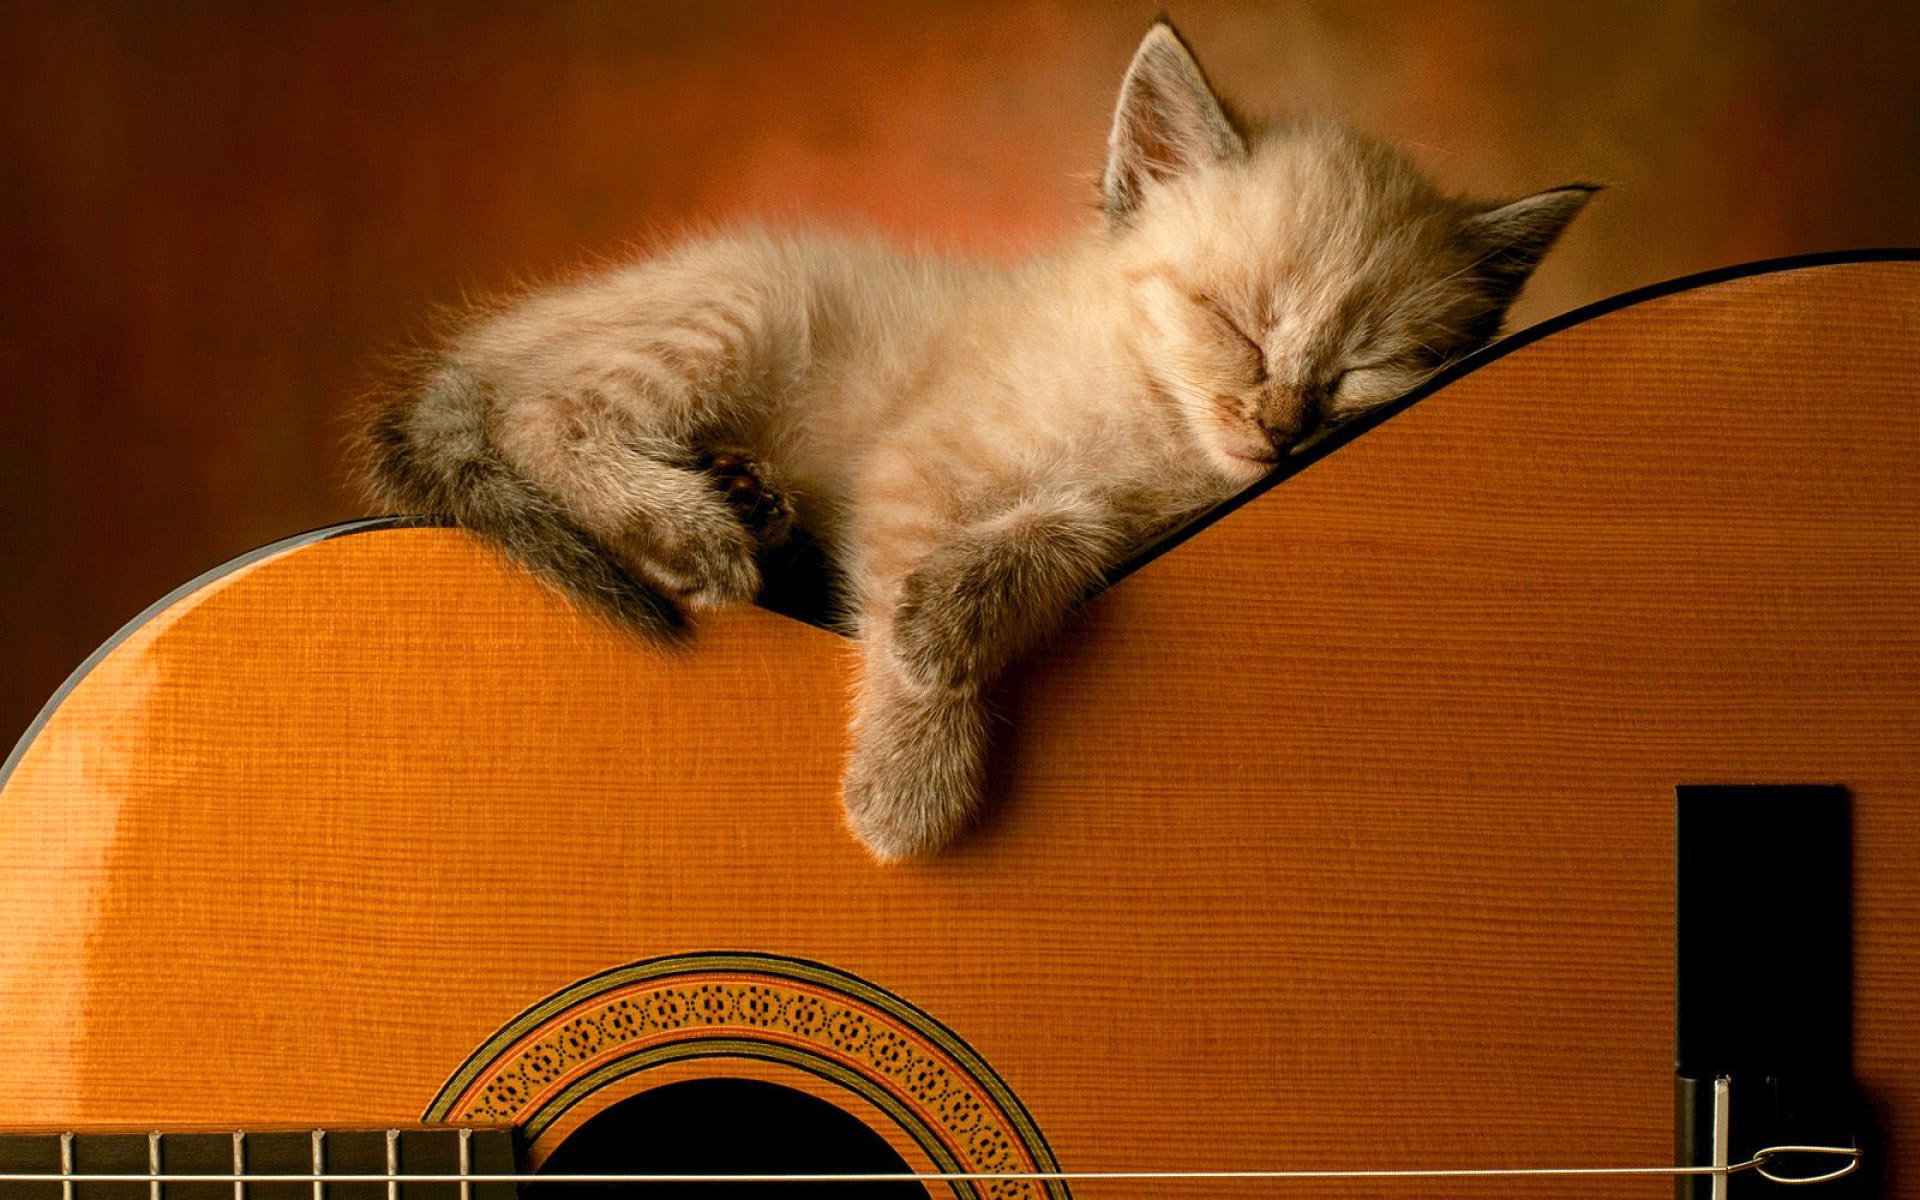 Kitty sleep on guitar